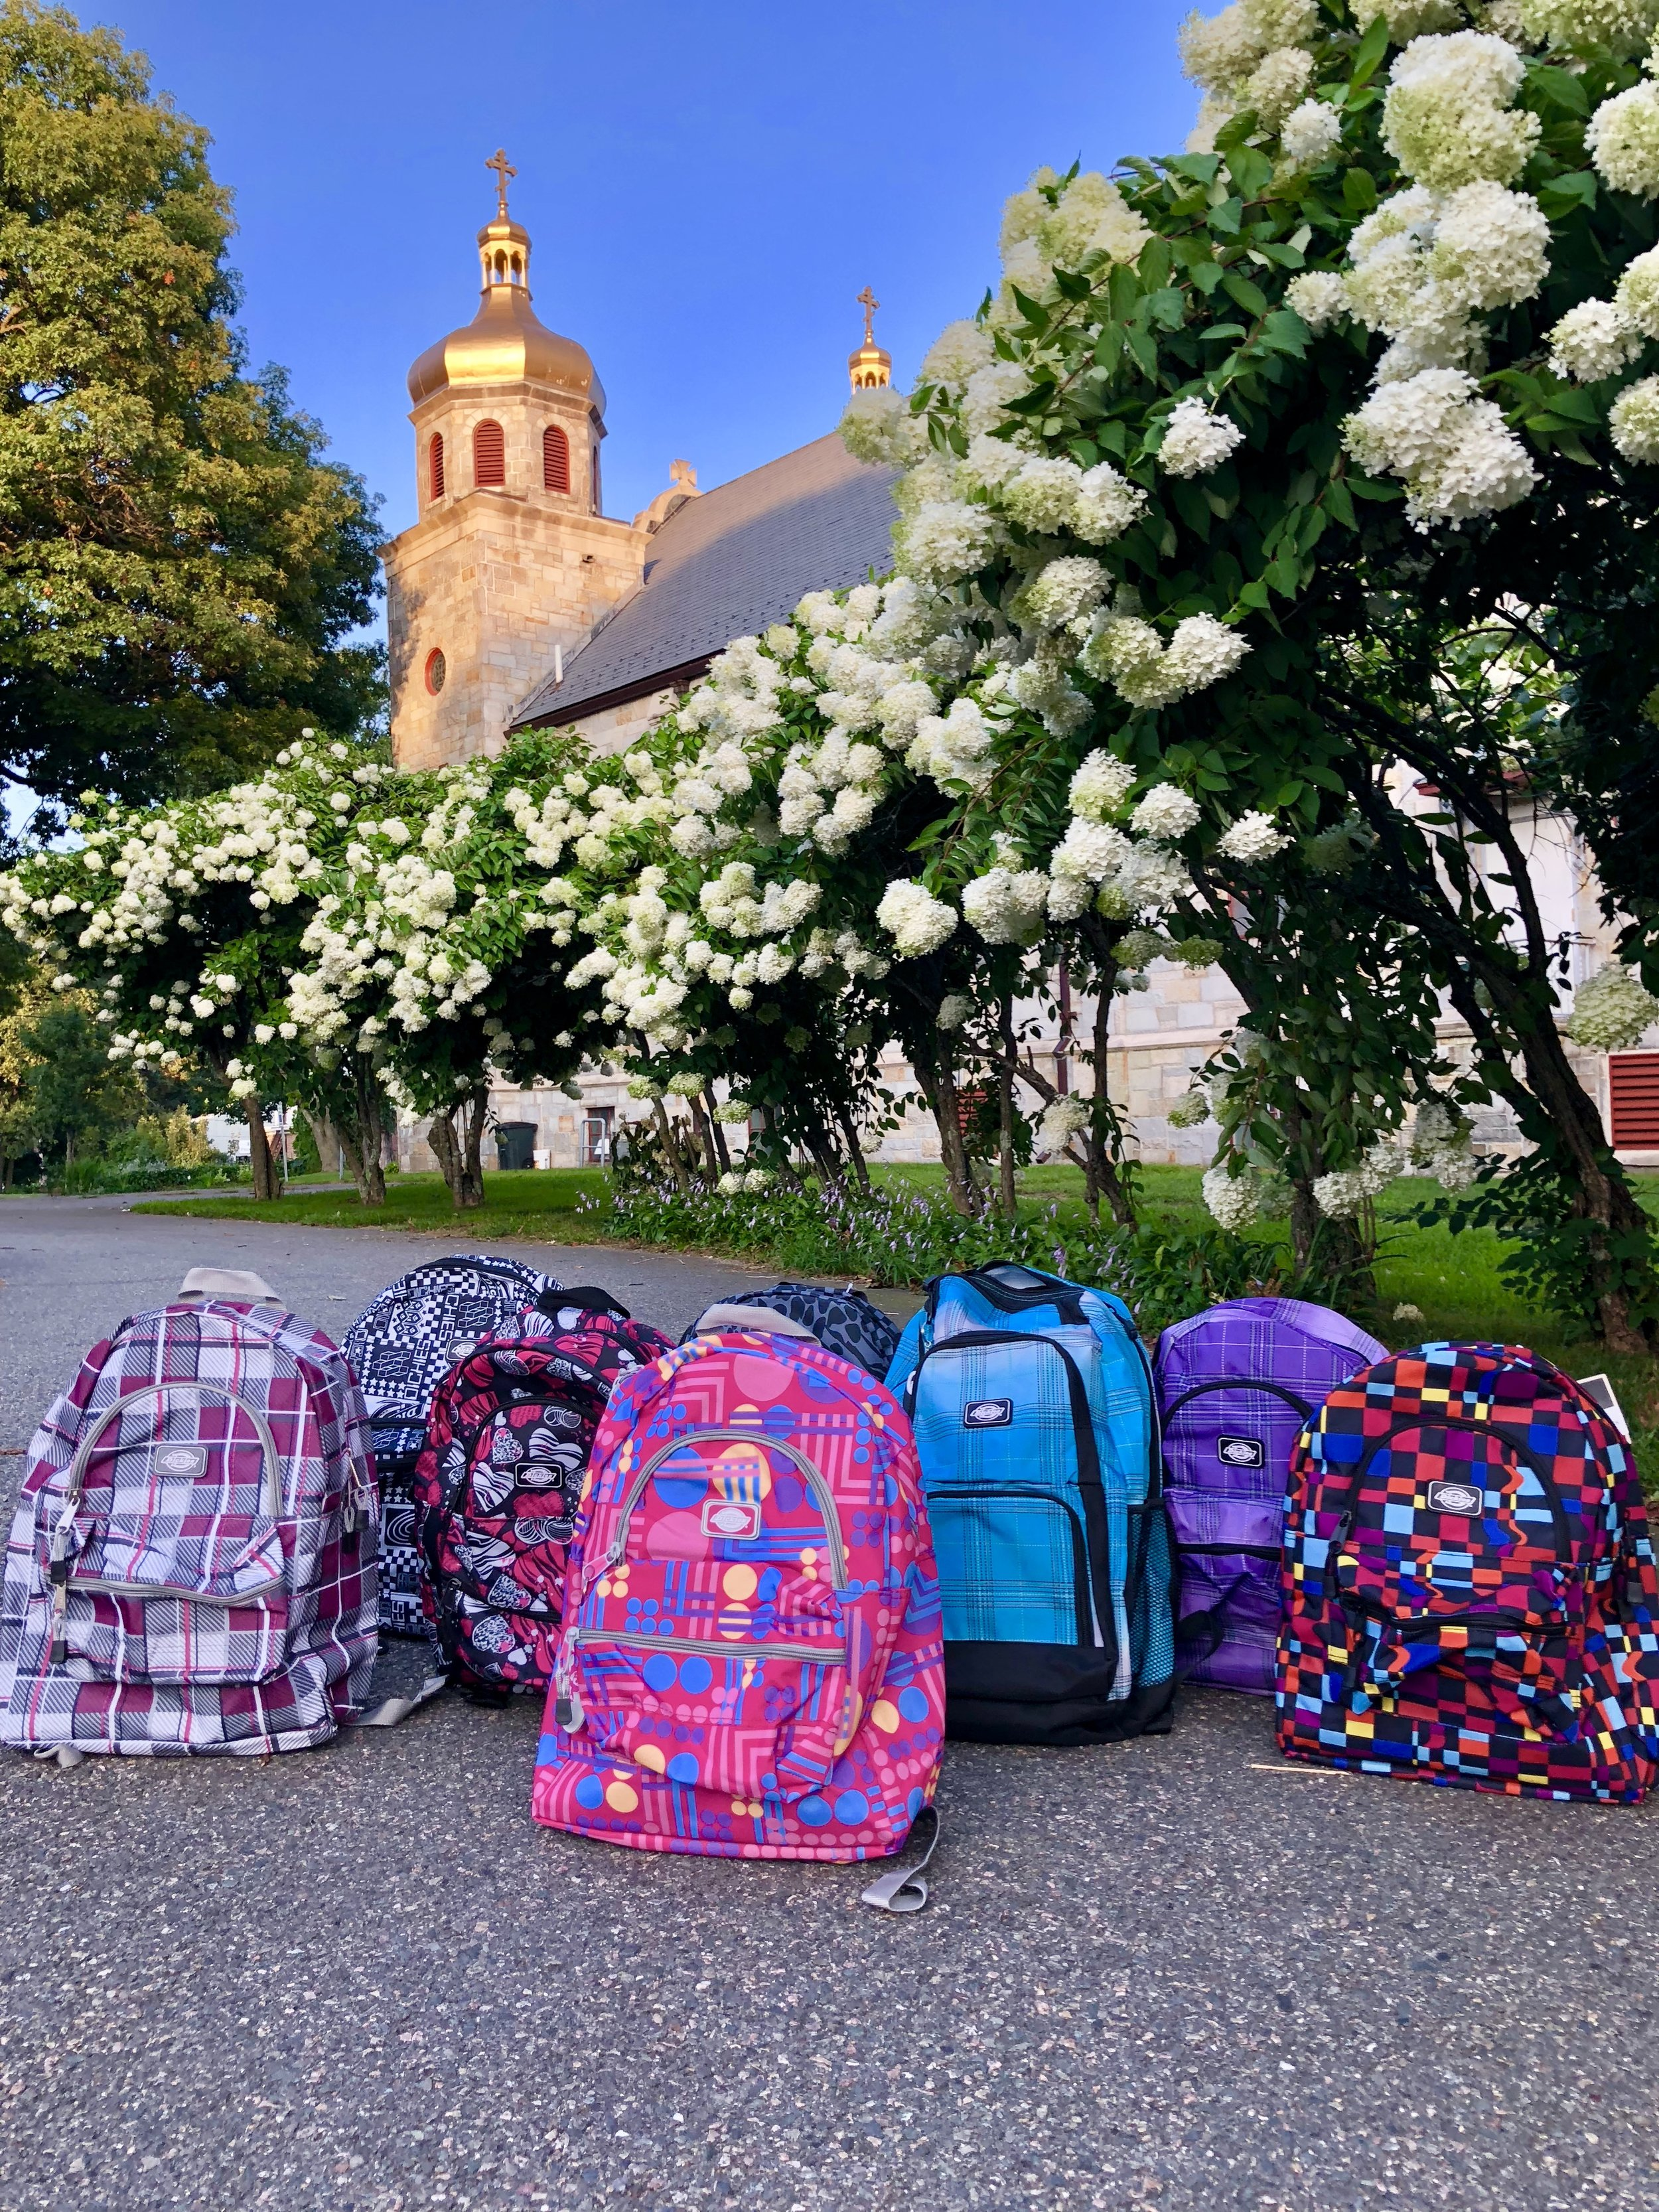 46 Backpacks donated by the amazing parishioners of St.Michael Ukrainian Orthodox Church. Every backpack was stuffed with love and school supplies. We are so grateful to everyone involved in this service project! The foster children of Adoption Rhode Island feel all the love you have sent! Thank You! *Click picture to link to St. Michael Ukrainian Orthodox Church*